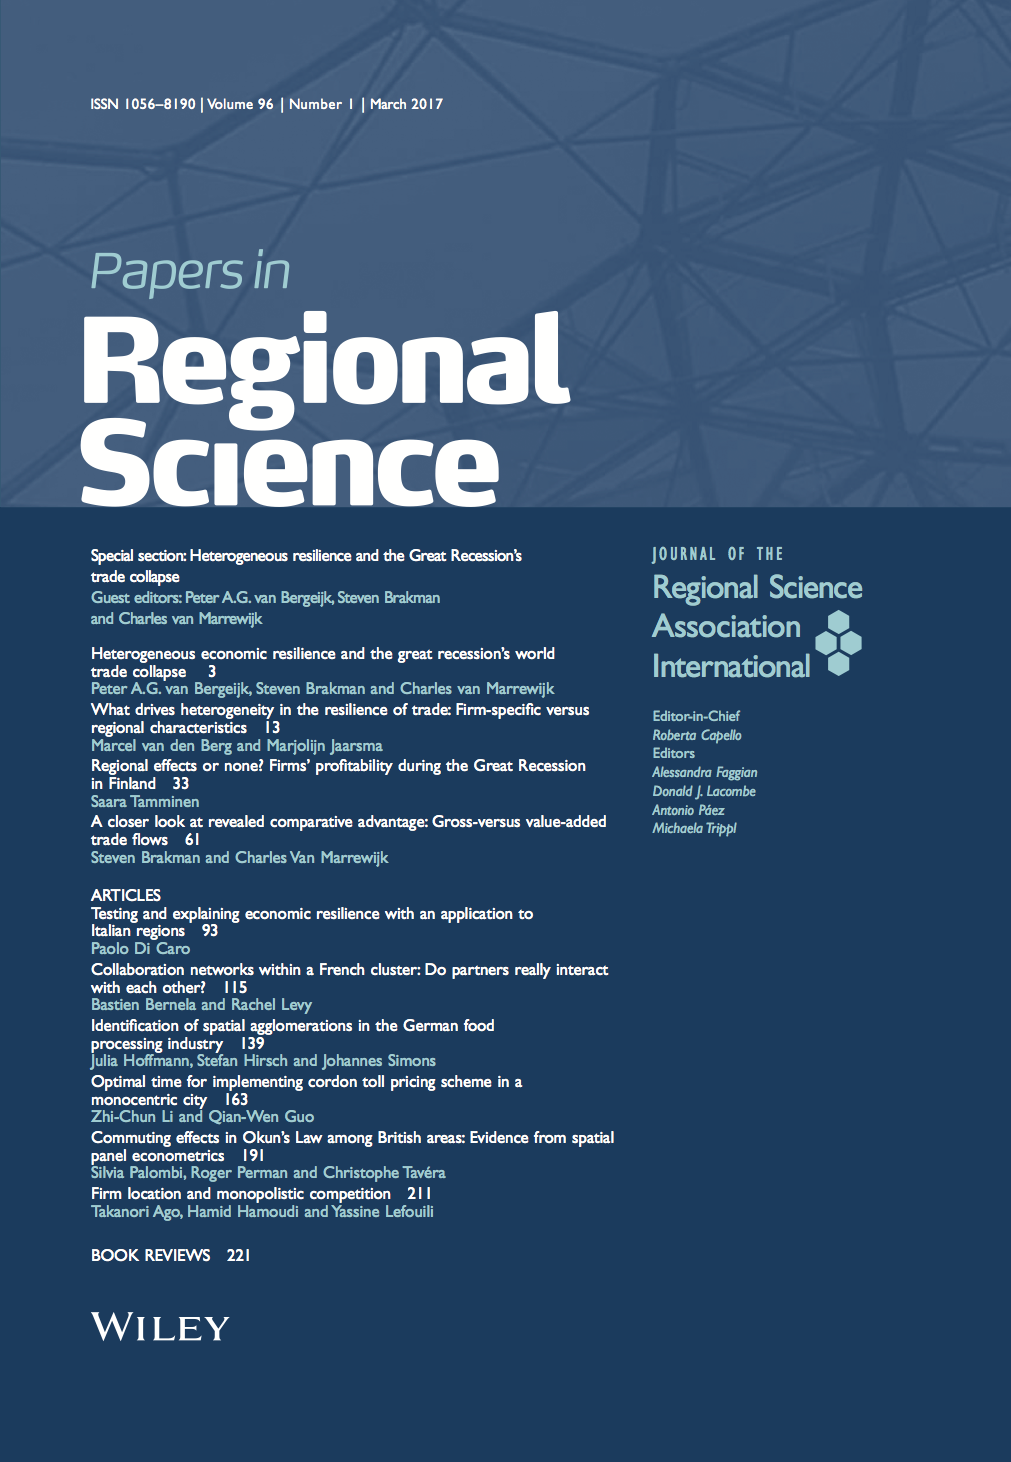 Template for submissions to Papers in Regional Science